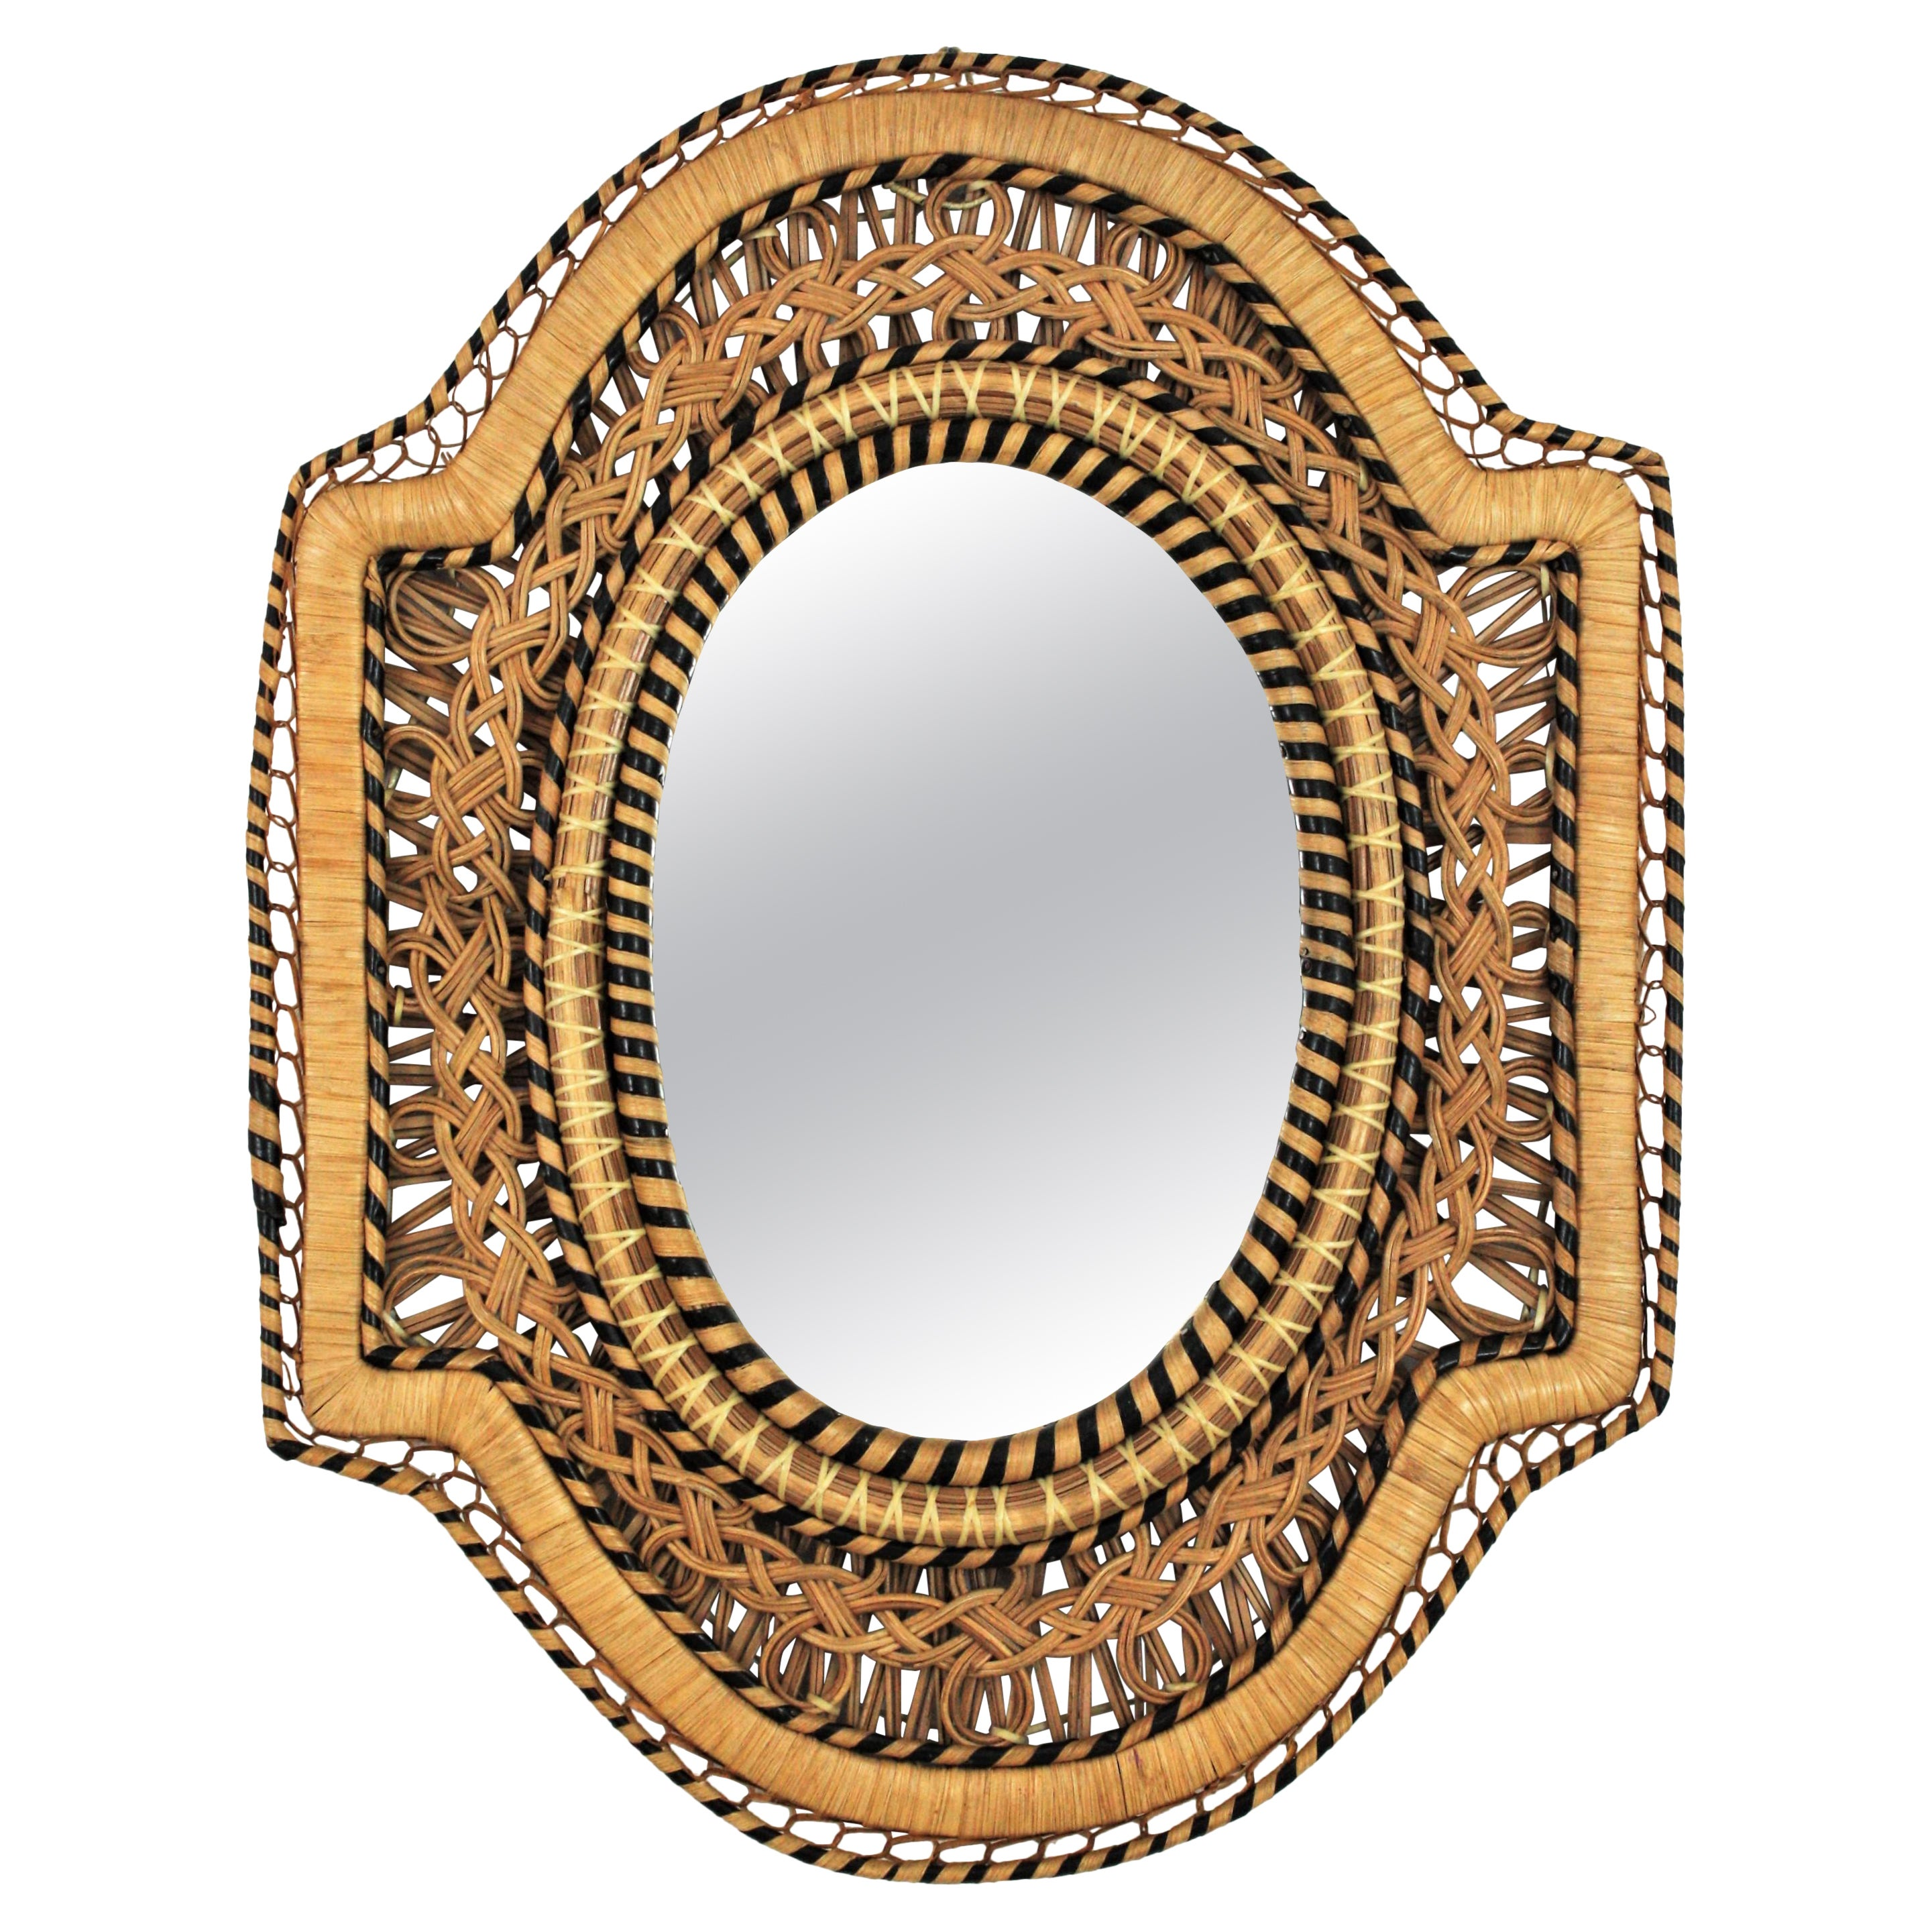 Rattan and Wicker Braided Emmanuelle Peacock Mirror, 1970s